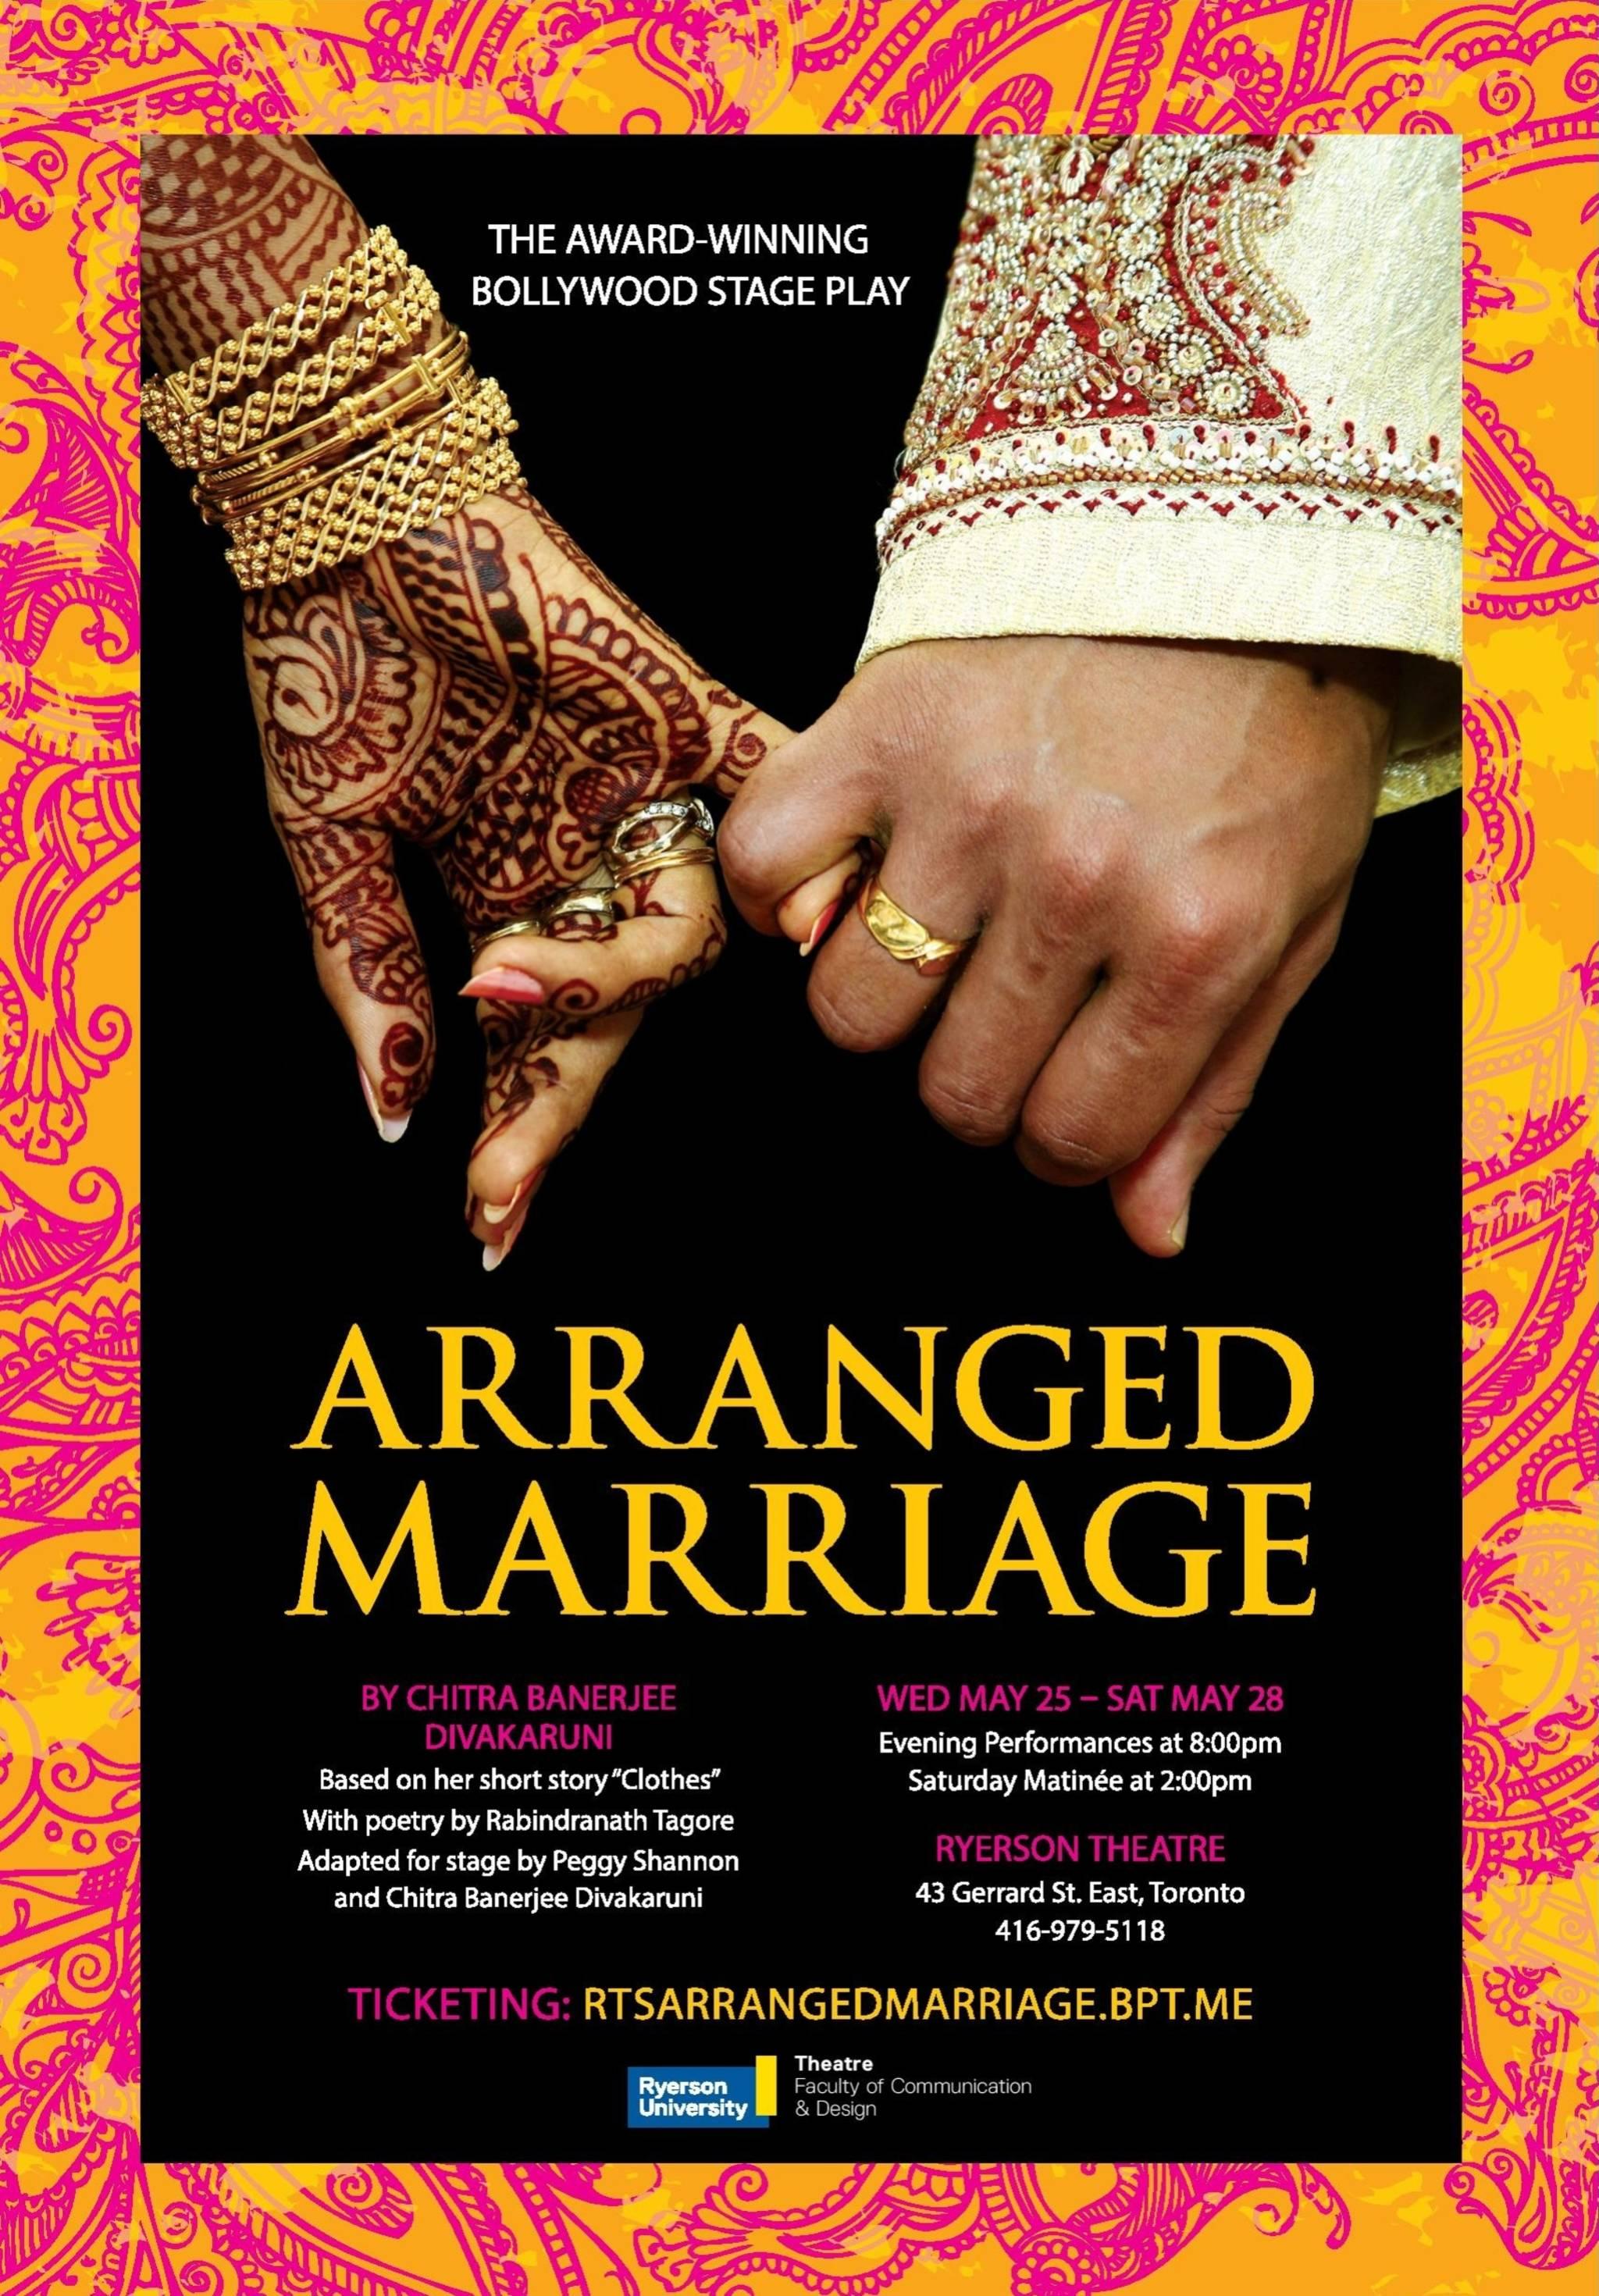 arranged marriage chitra banerjee divakaruni essay Amos beimel phd thesis clothes divakaruni clothes chitra banerjee divakaruni, essay on she left kolkata and came to the united statesarranged marriage.